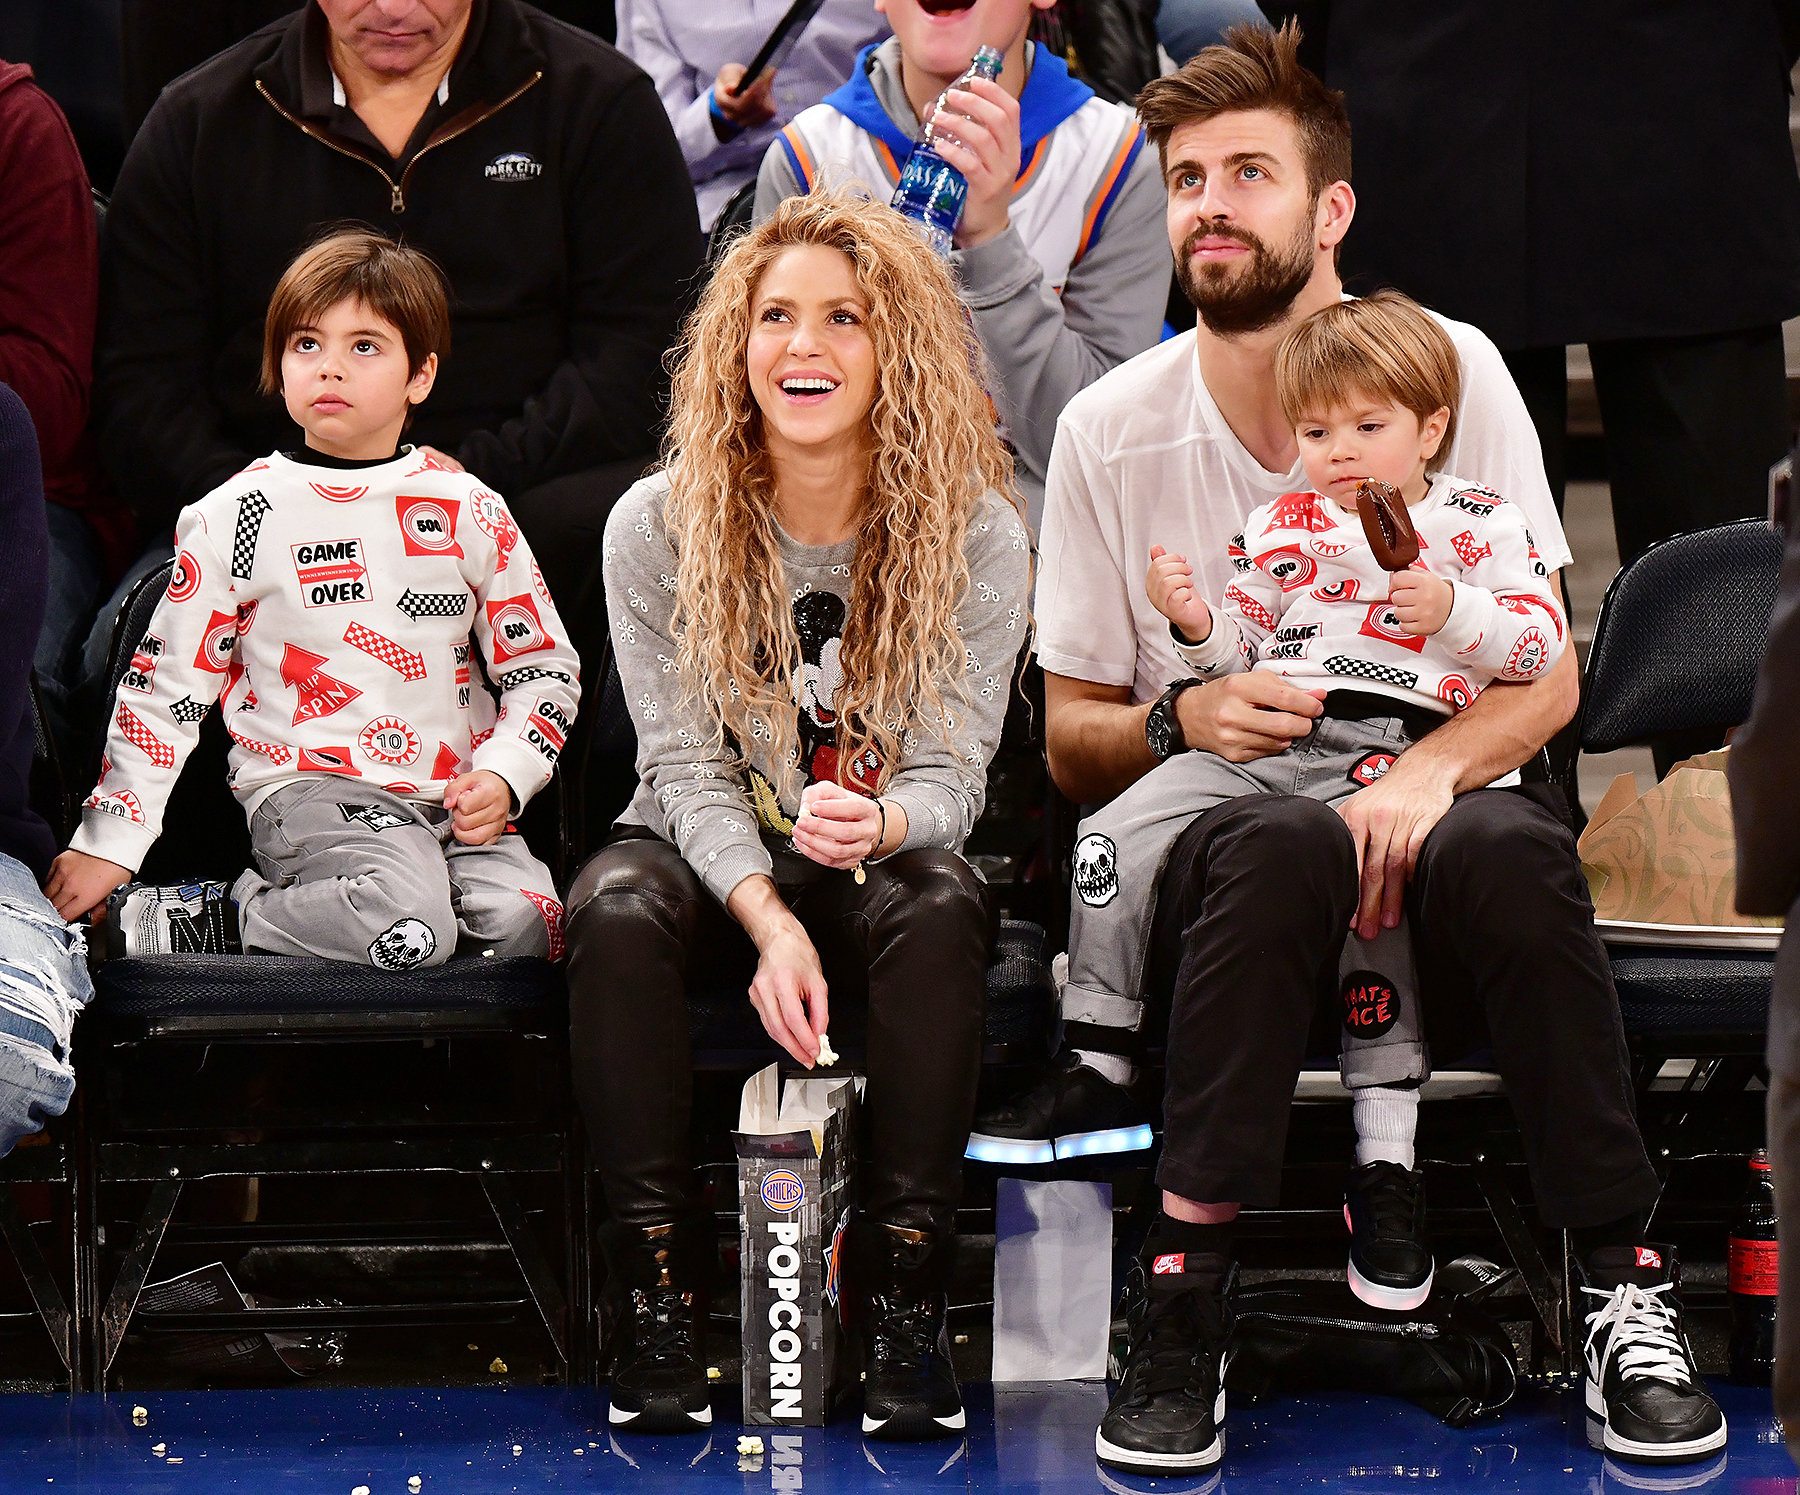 Shakira Gerard Pique New York Knicks Vs Philadelphia 76ers game with kids